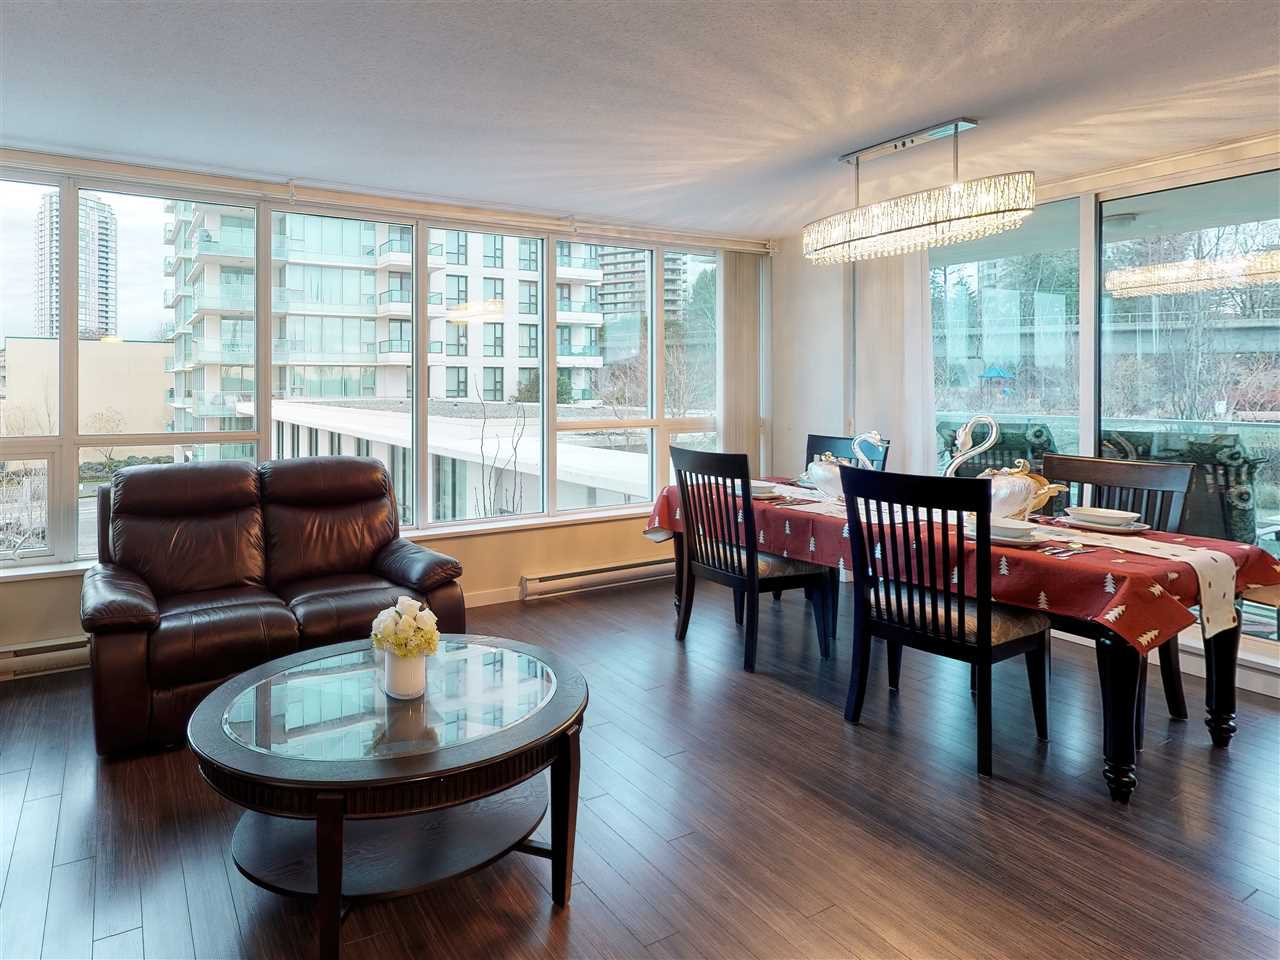 Photo 9: Photos: 405 2232 DOUGLAS ROAD in Burnaby: Brentwood Park Condo for sale (Burnaby North)  : MLS®# R2347040